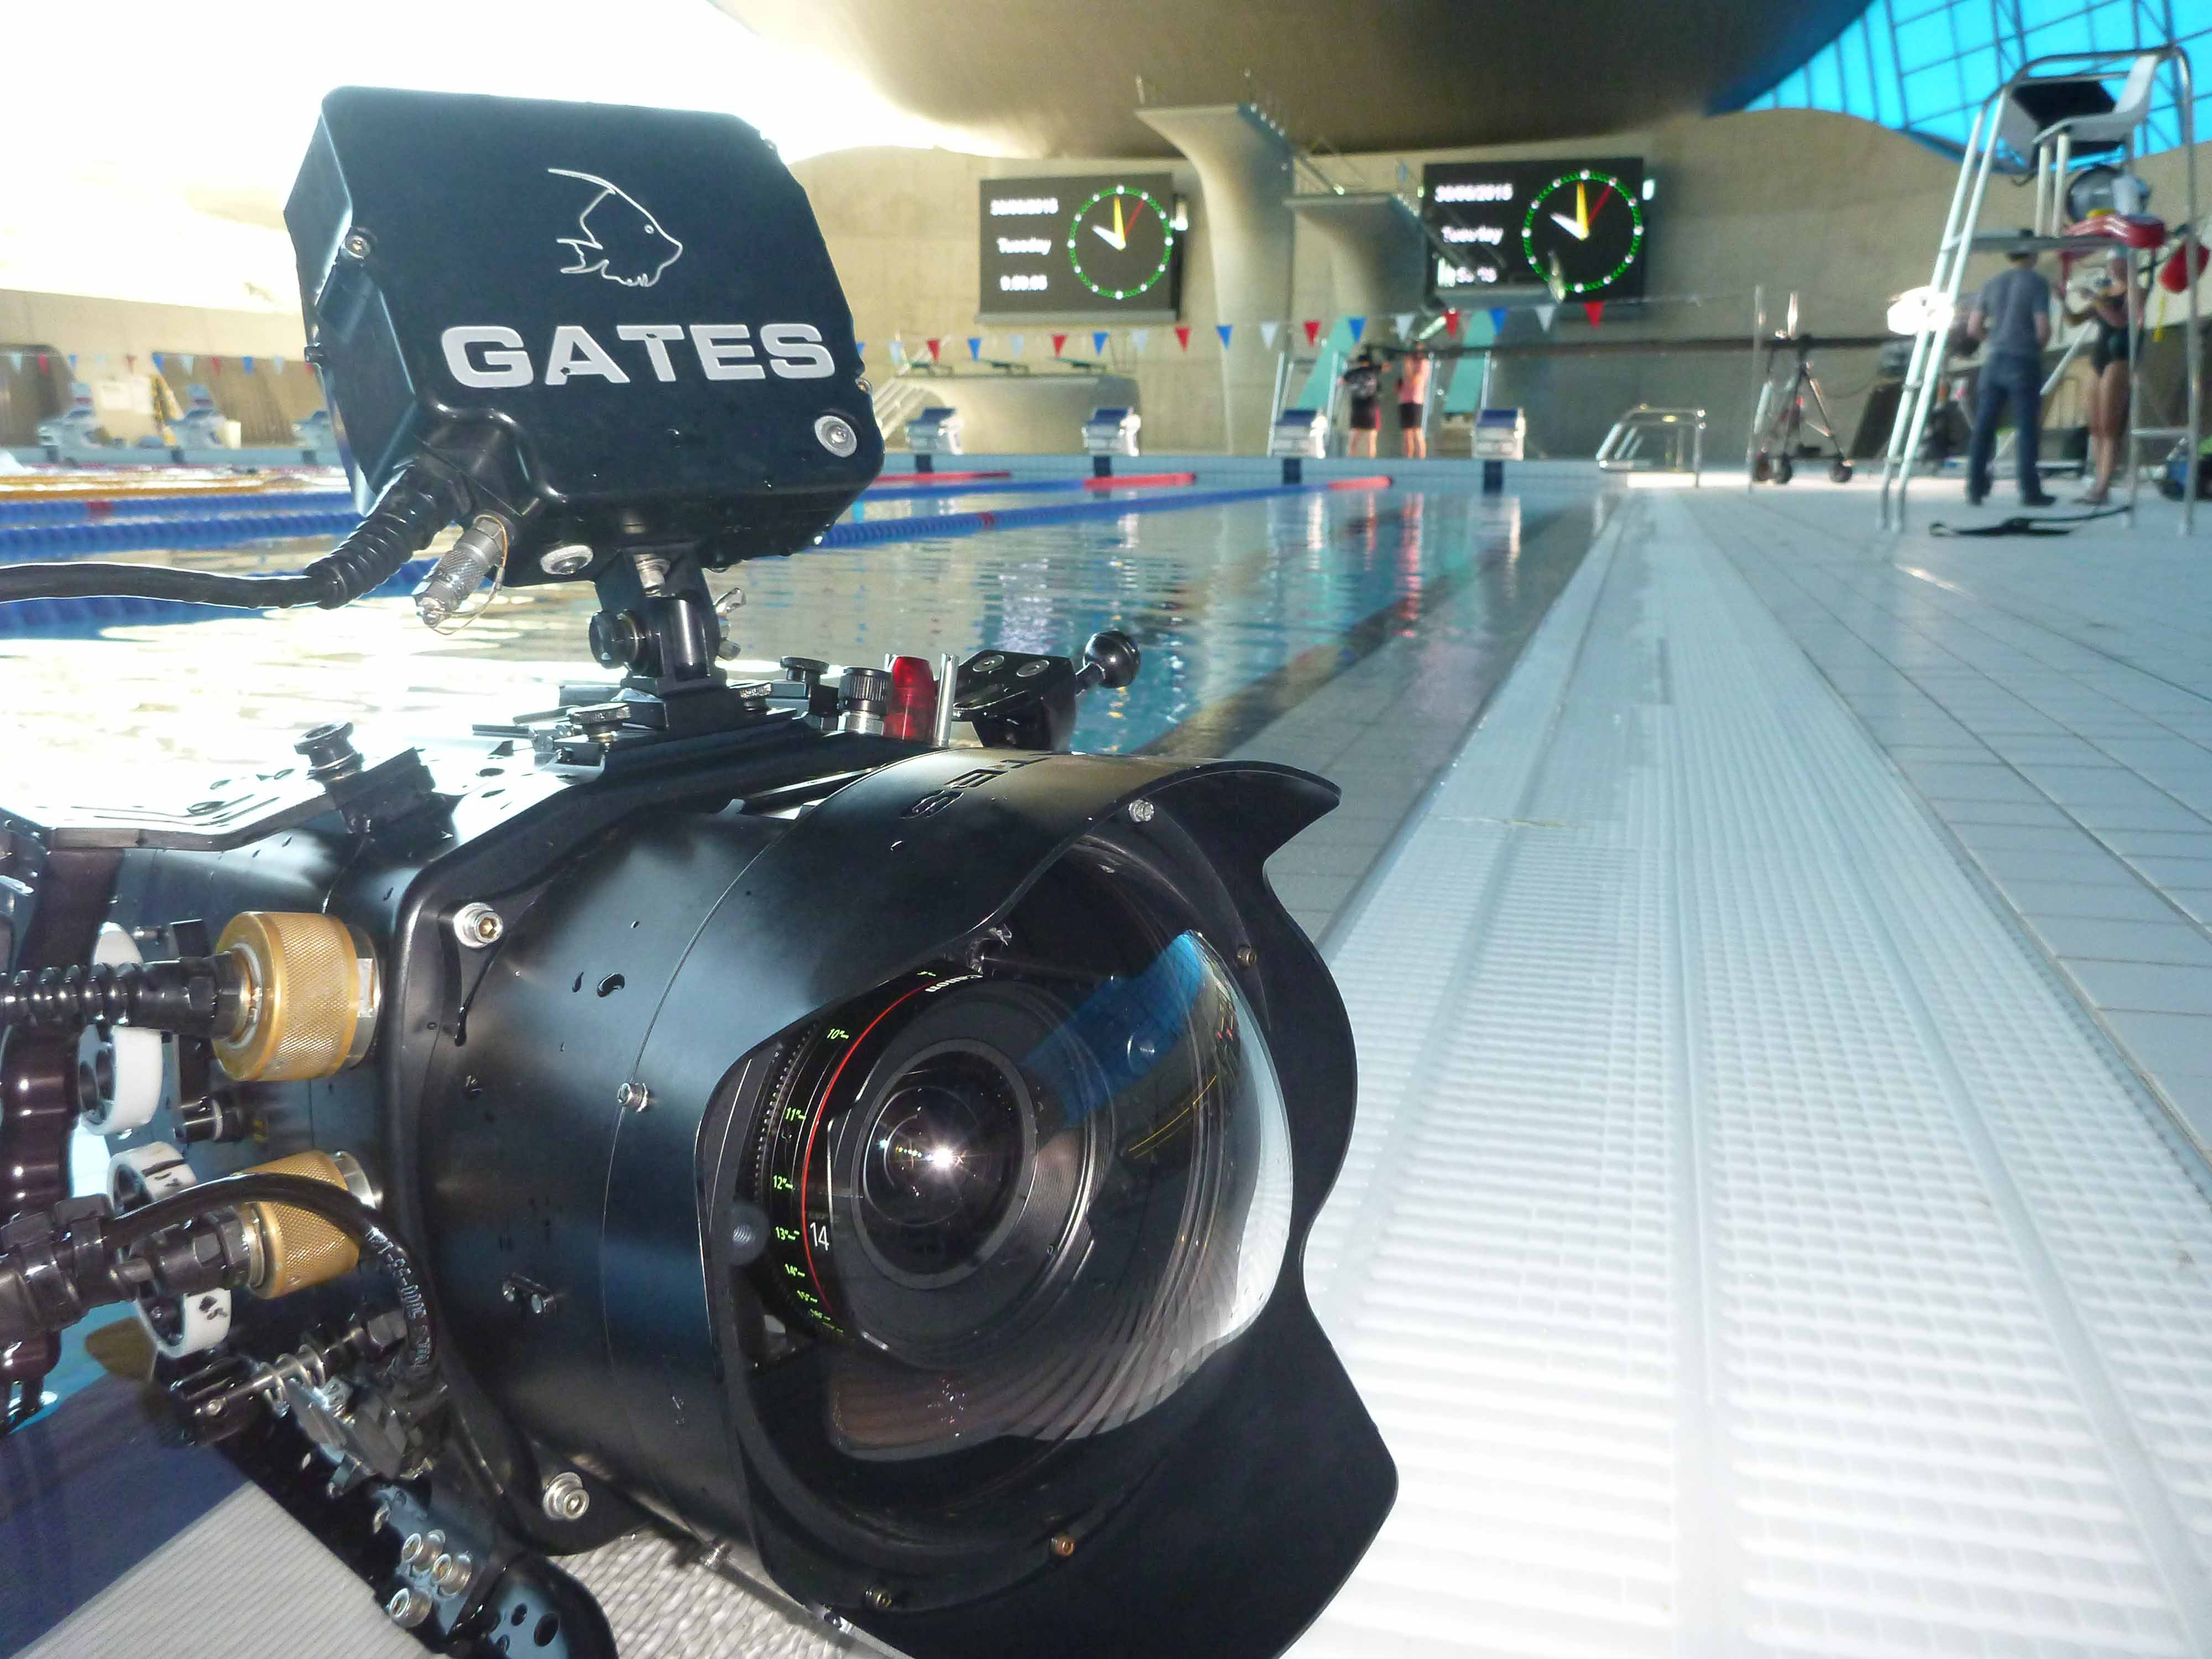 Red Epic dragon camera on Speedo shoot